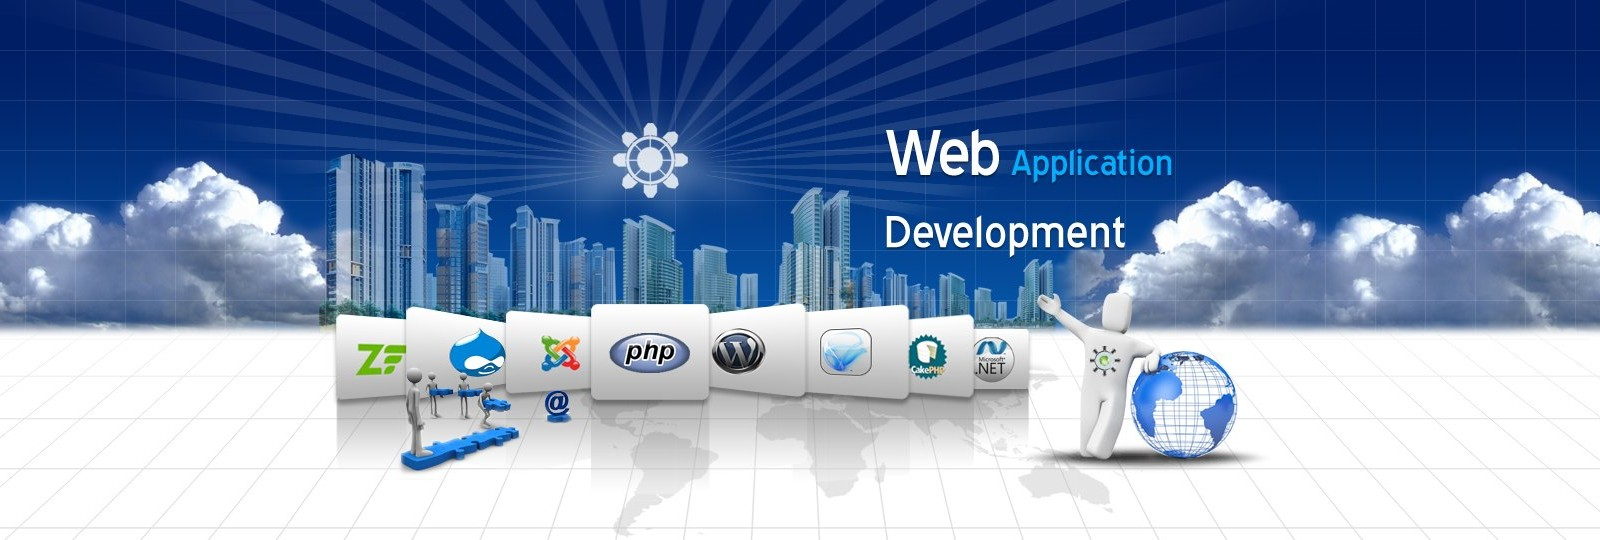 WebApplication